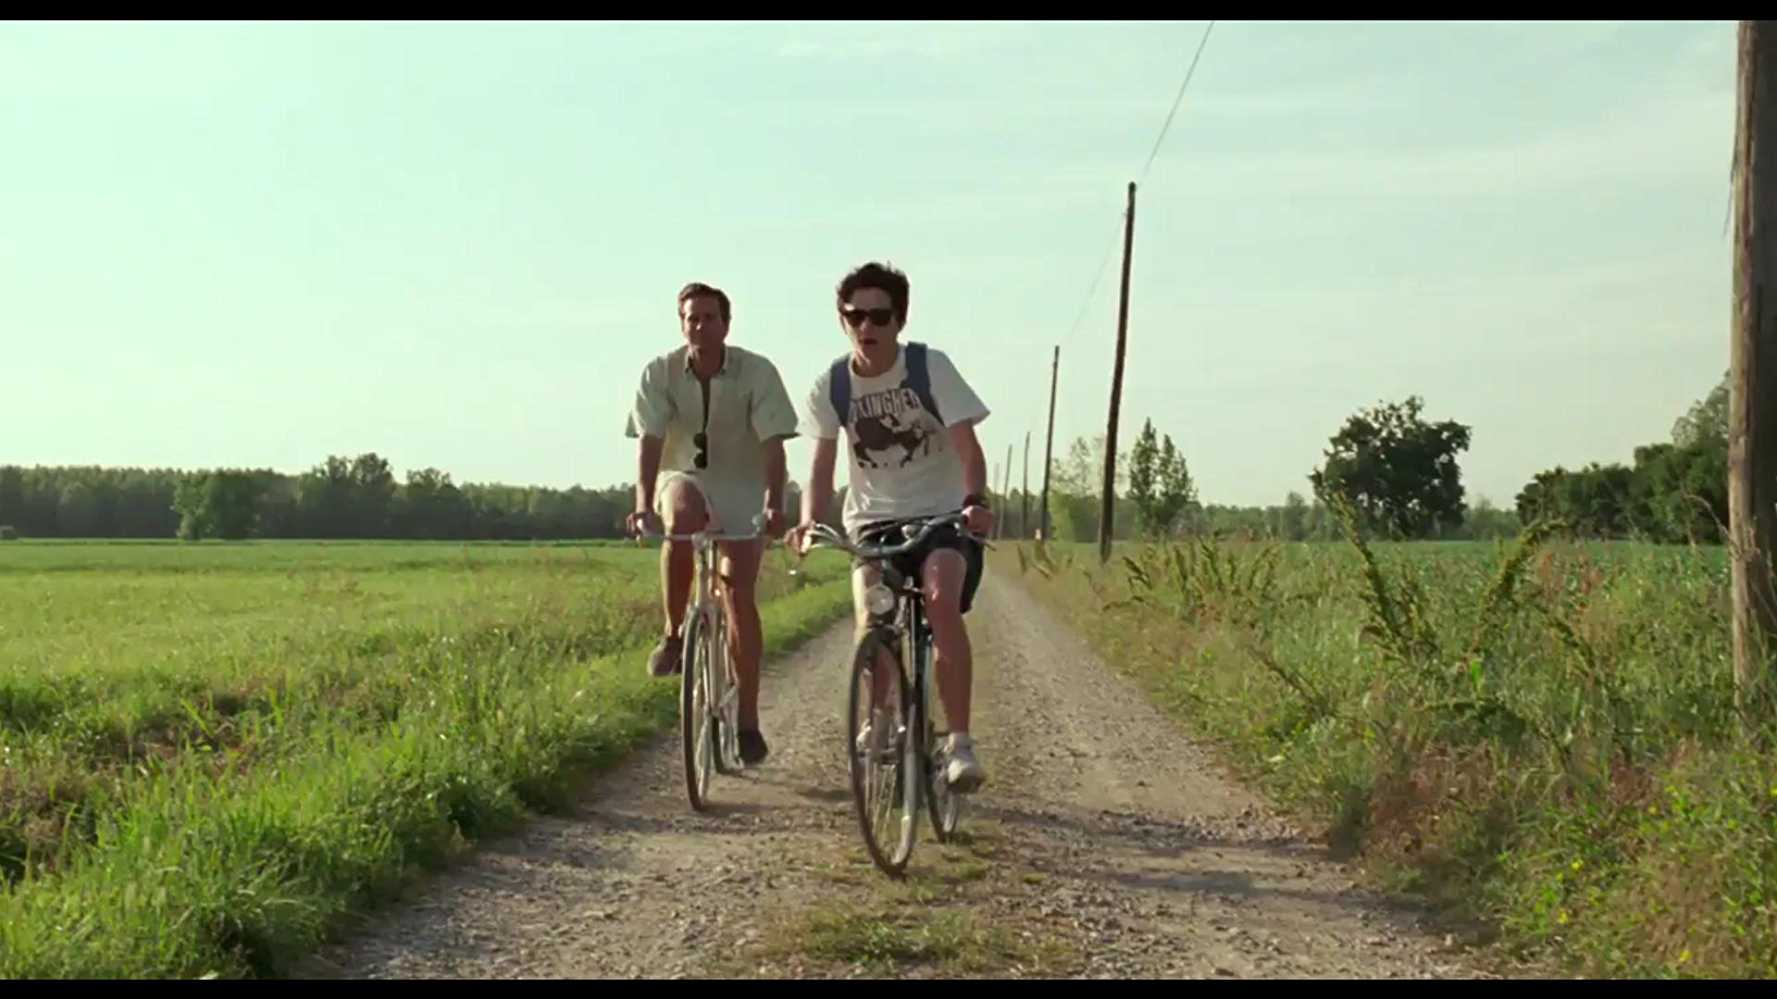 Armie Hammer and Timothee Chalamet as Oliver and Elio in Luca Guadagnino's 'Call Me By Your Name'. (IMDb)